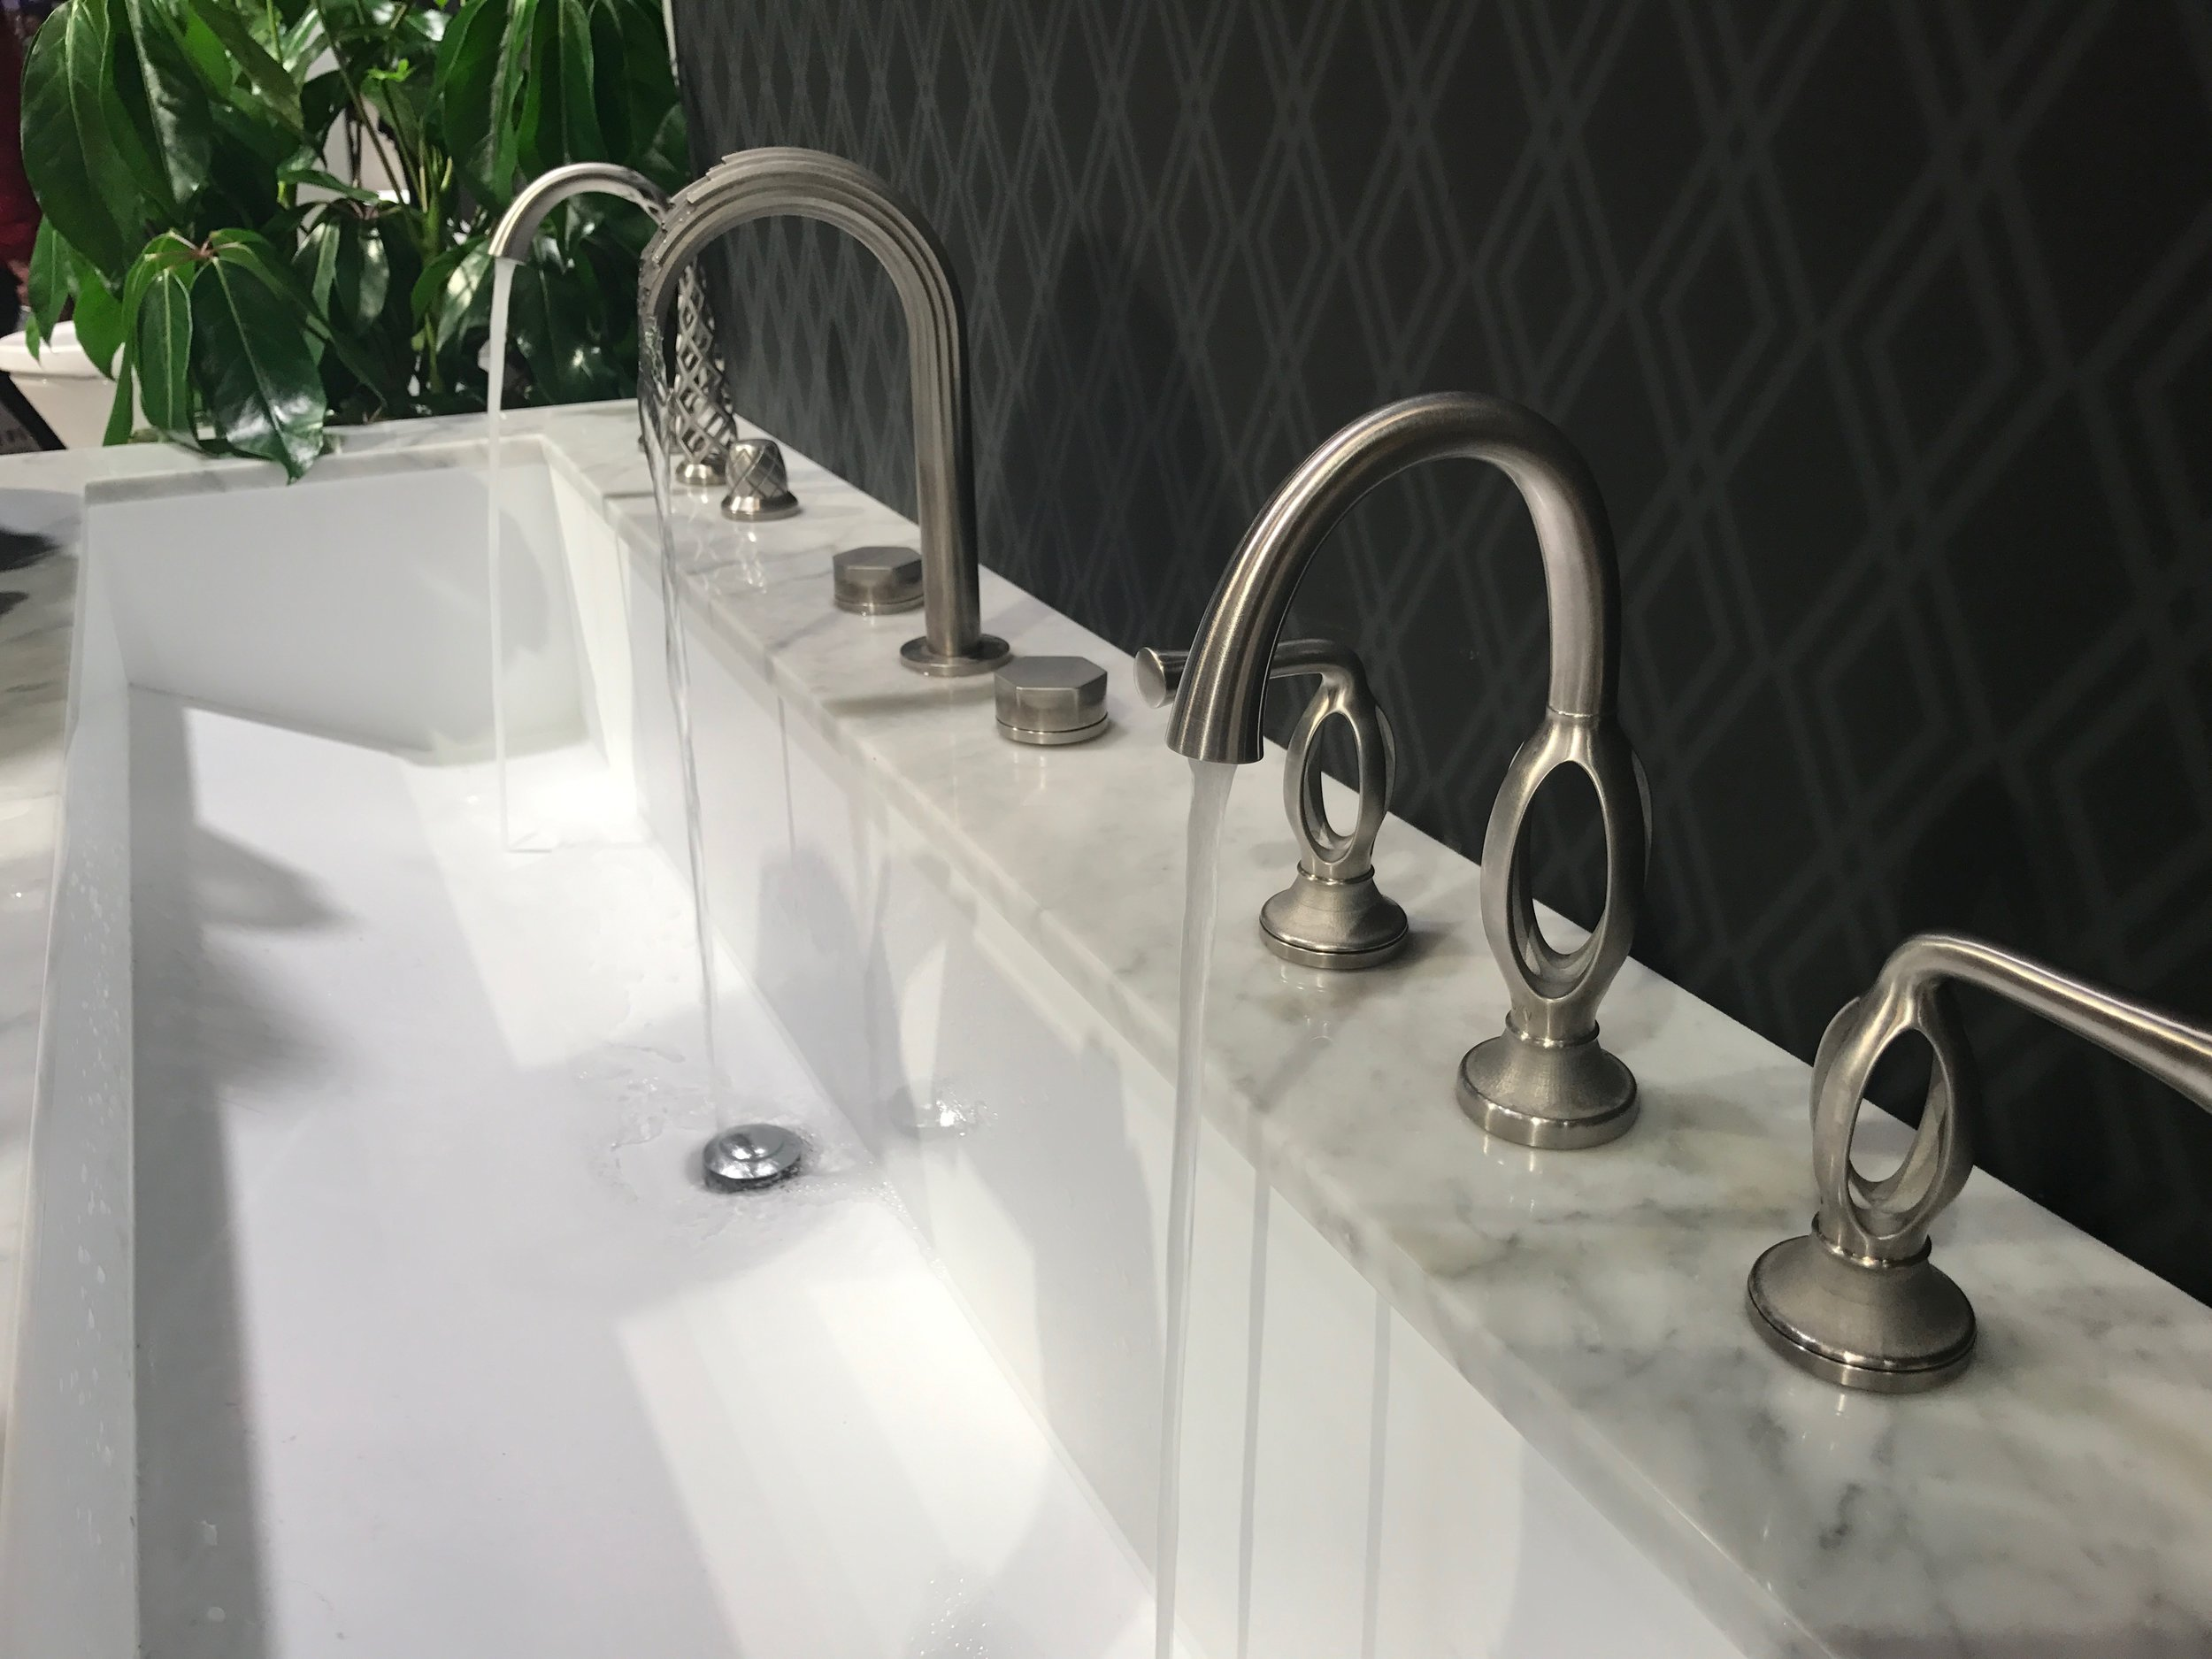 Intriguing faucets at the DXV American Standard booth KBIS 2017